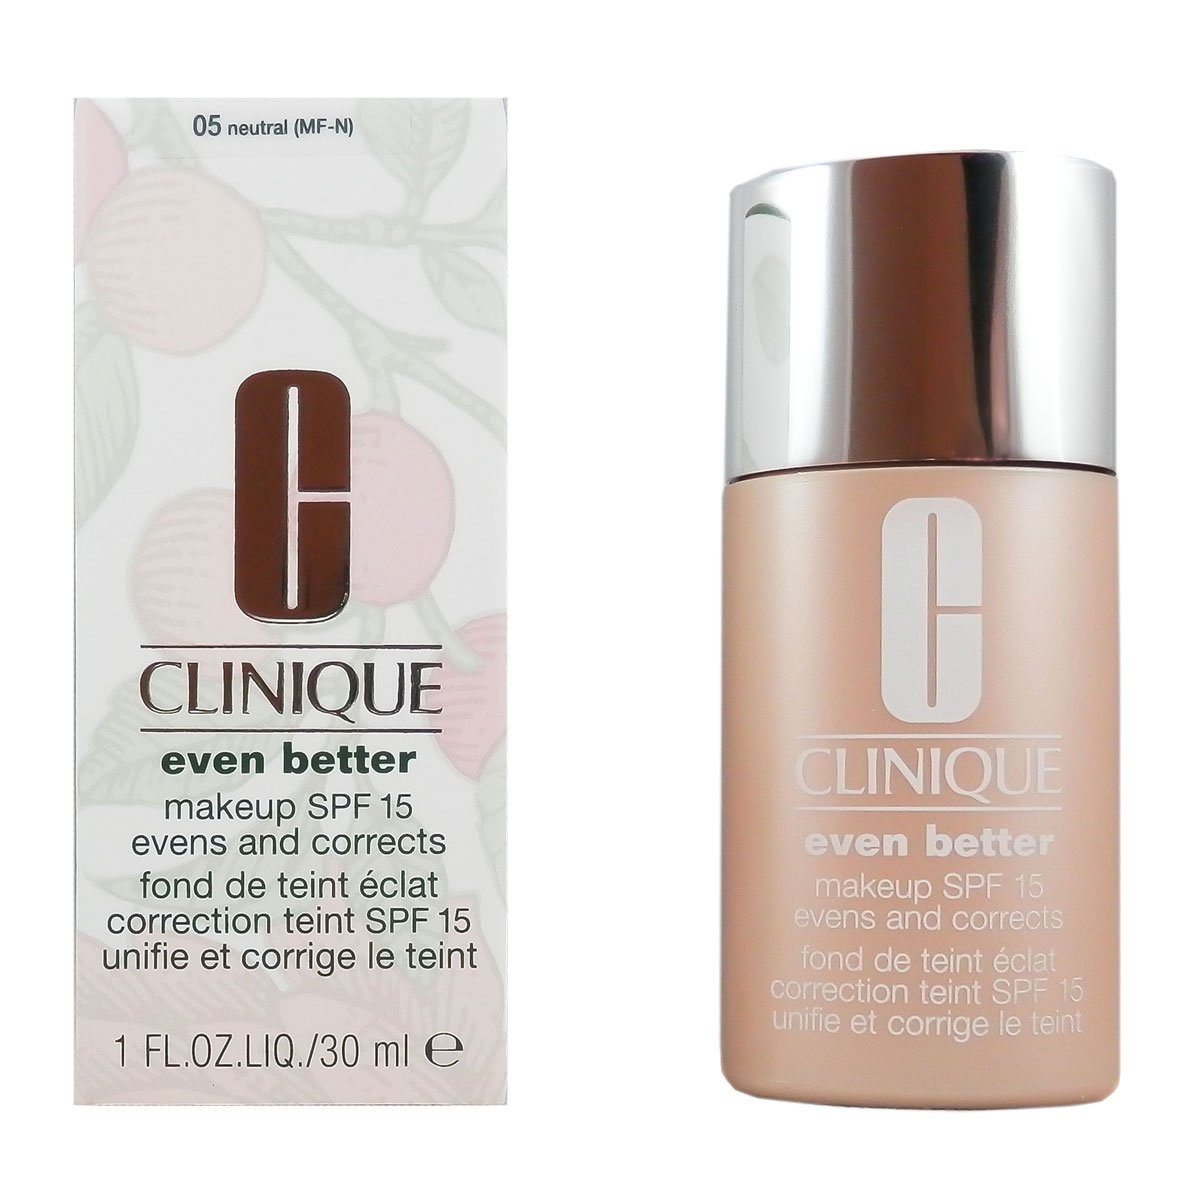 Clinique even better makeup foundation review swatches before - Amazon Com Clinique Even Better Makeup Broad Spectrum Spf15 Evens Correct Foundation 1 Ounce 05 Neutral Mf N Foundation Makeup Beauty